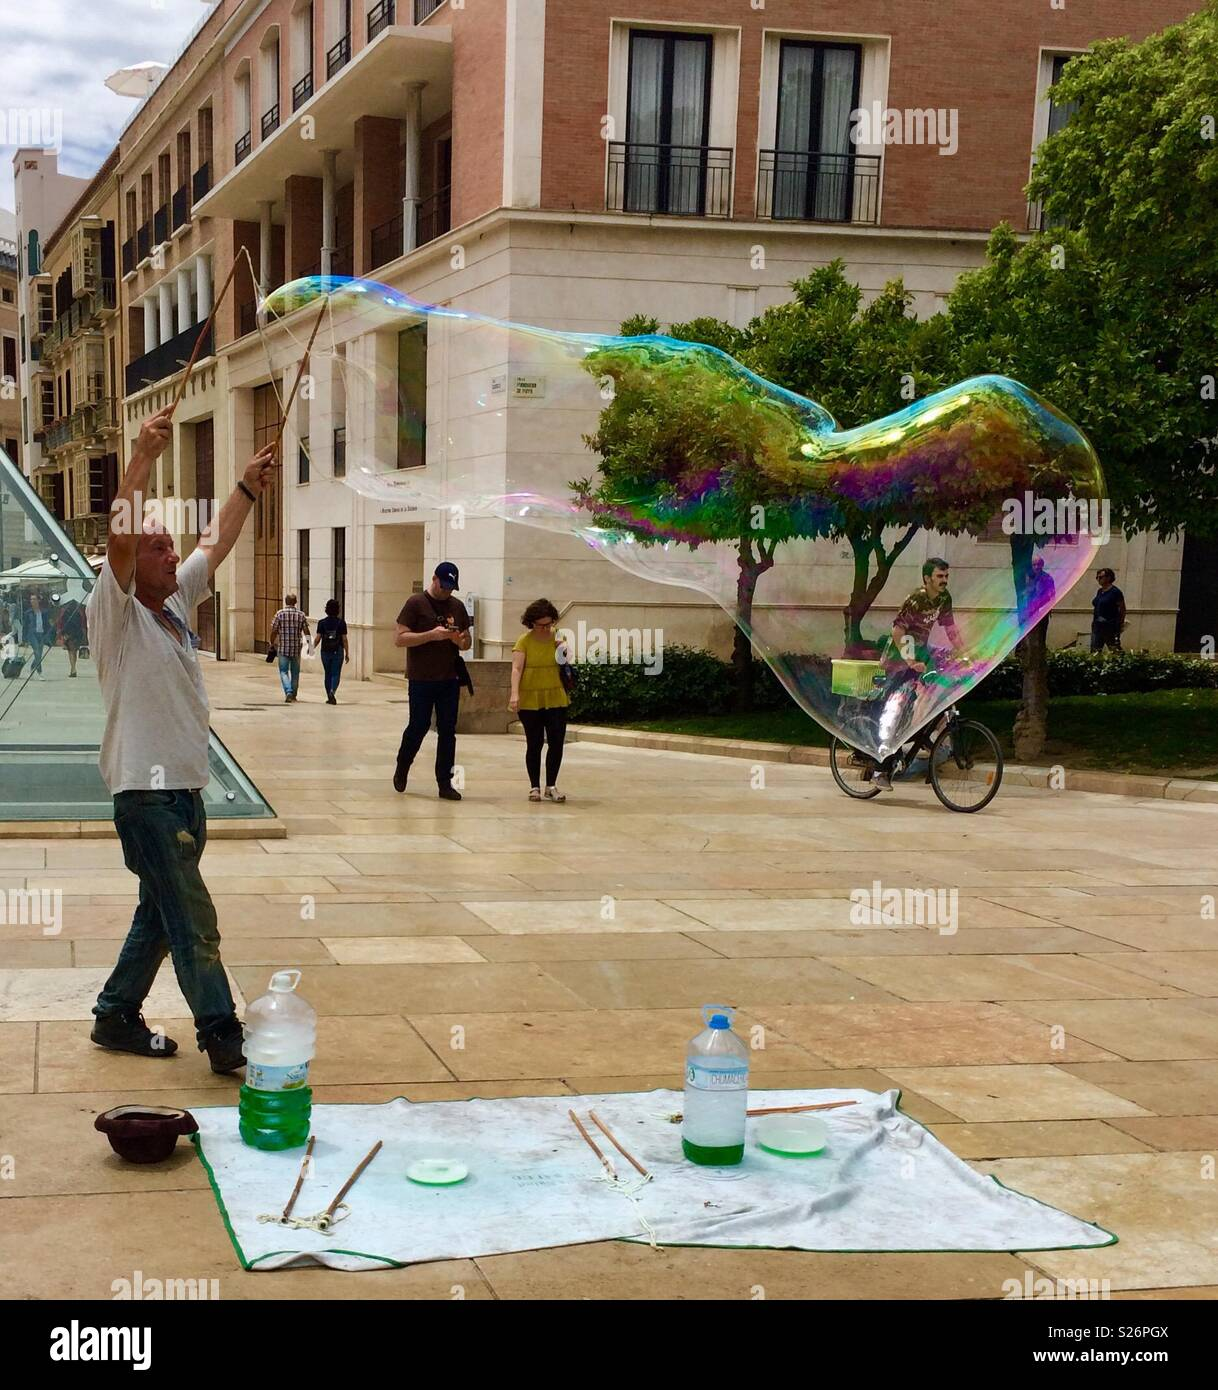 Blowing bubbles; man making huge bubble in Malaga - Stock Image